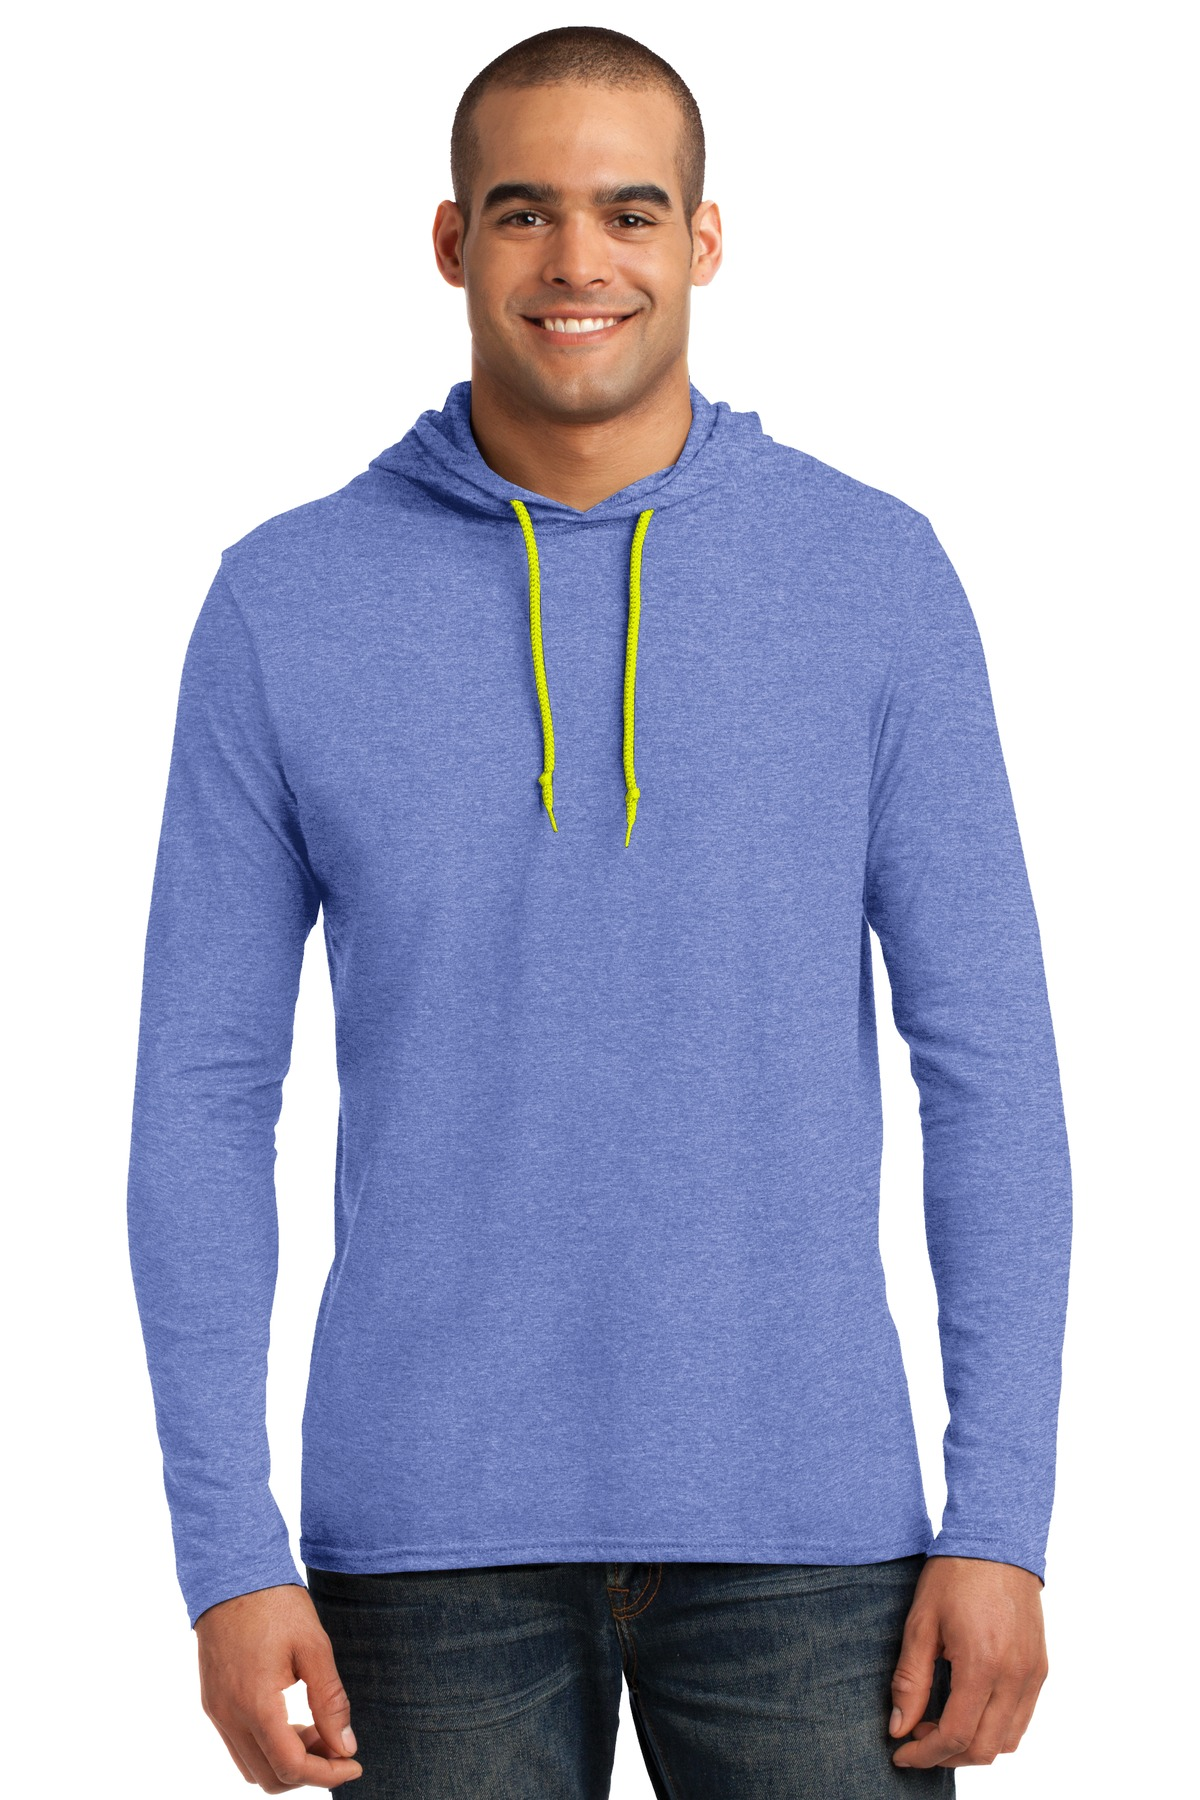 Anvil ®  100% Combed Ring Spun Cotton Long Sleeve Hooded T-Shirt. 987 - Heather Blue/ Neon Yellow